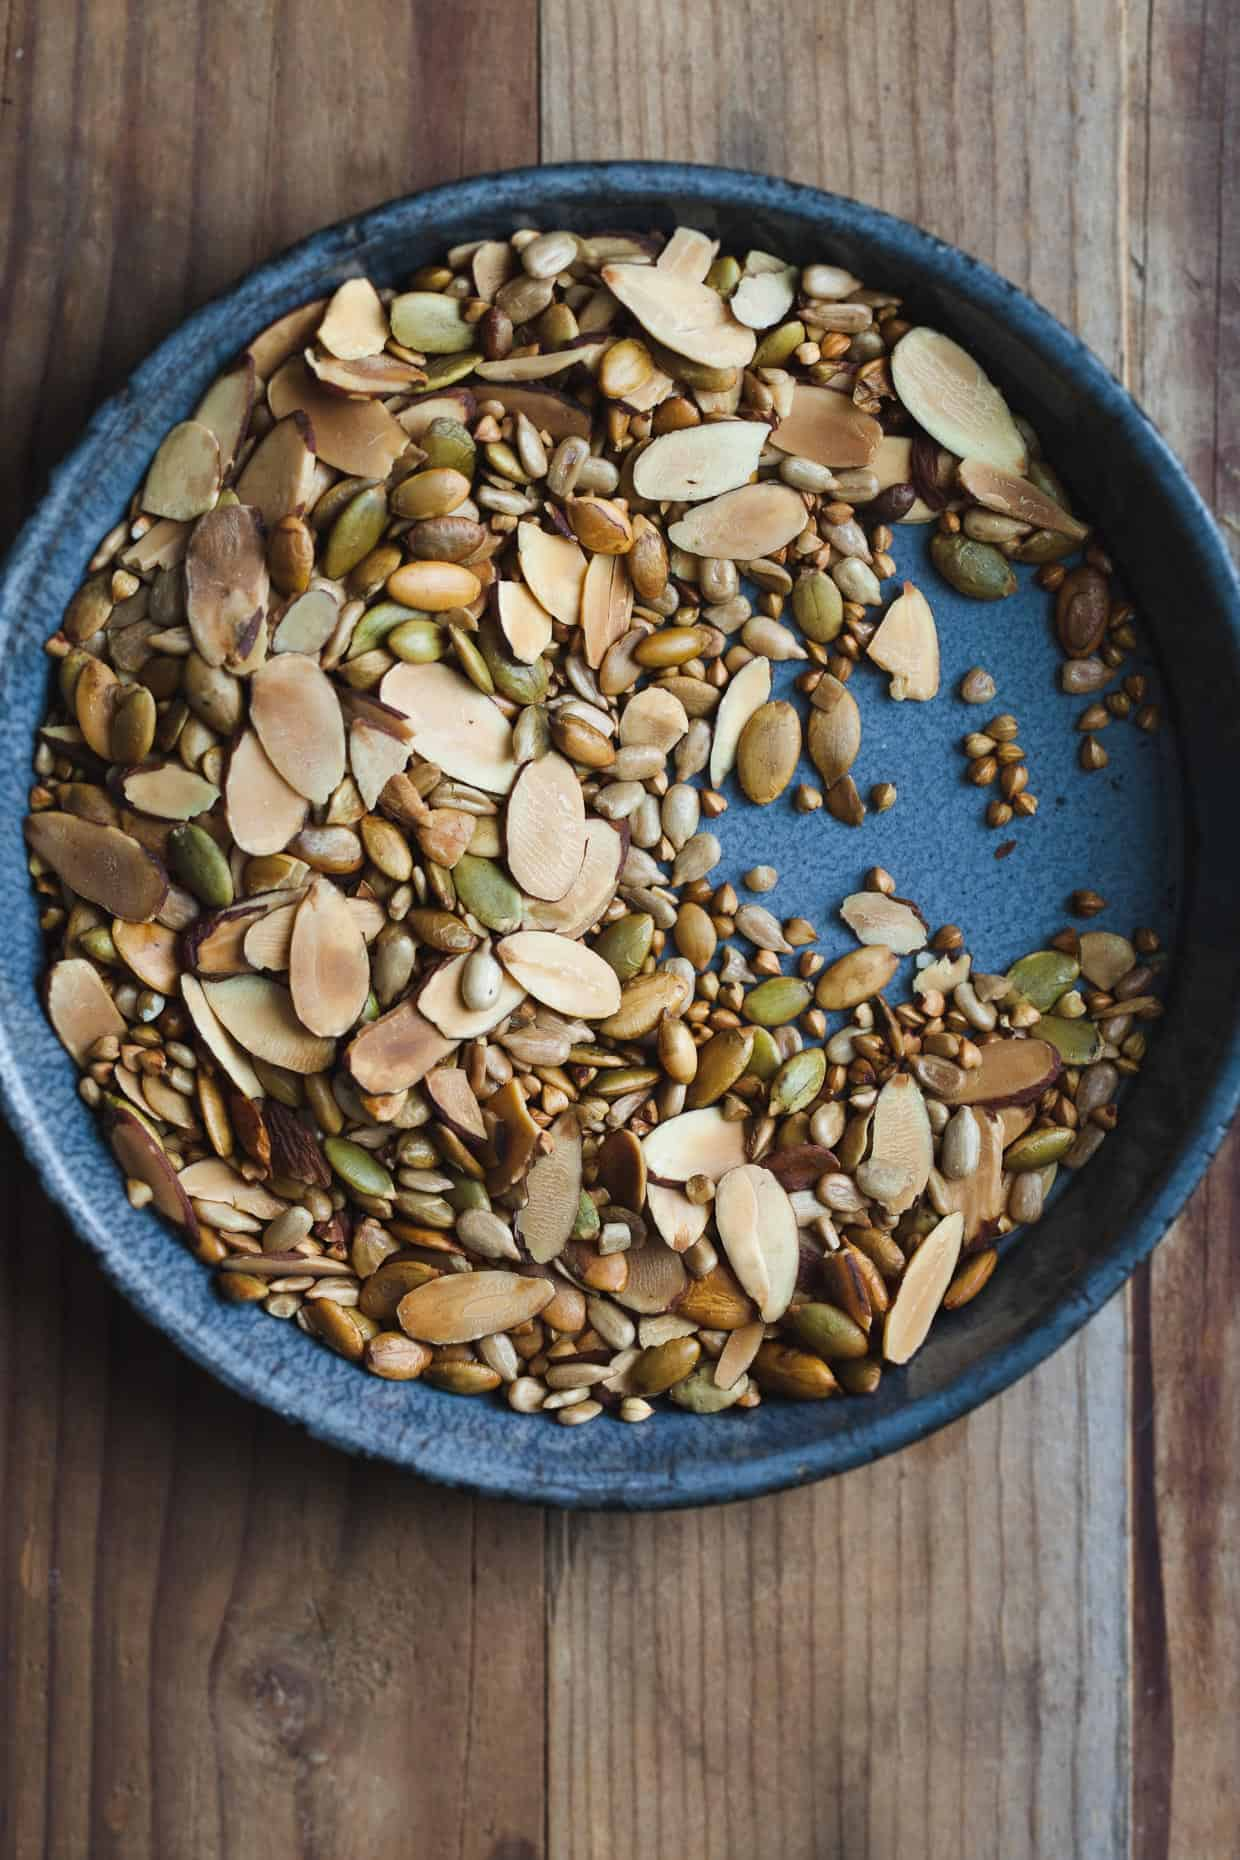 Toasted Nuts, Seeds, & Buckwheat